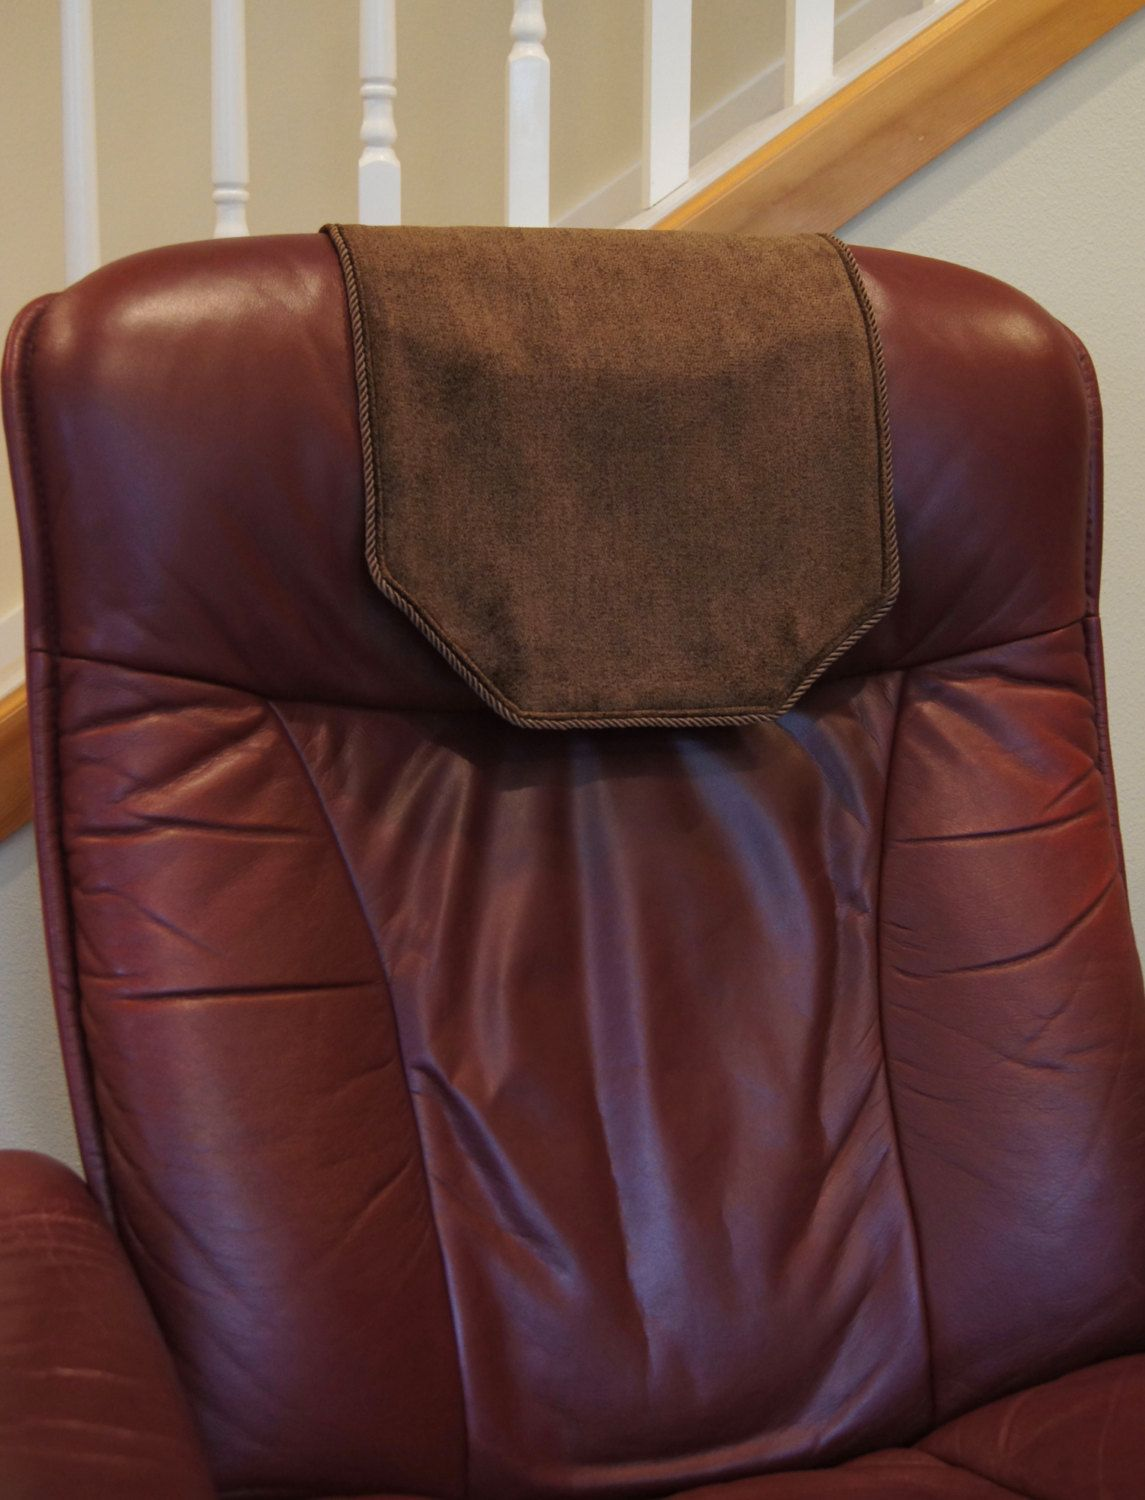 Recliner Chair Headrest Cover Chocolate Brown Recliner Cover Leather Recliner Chair Leather Chair